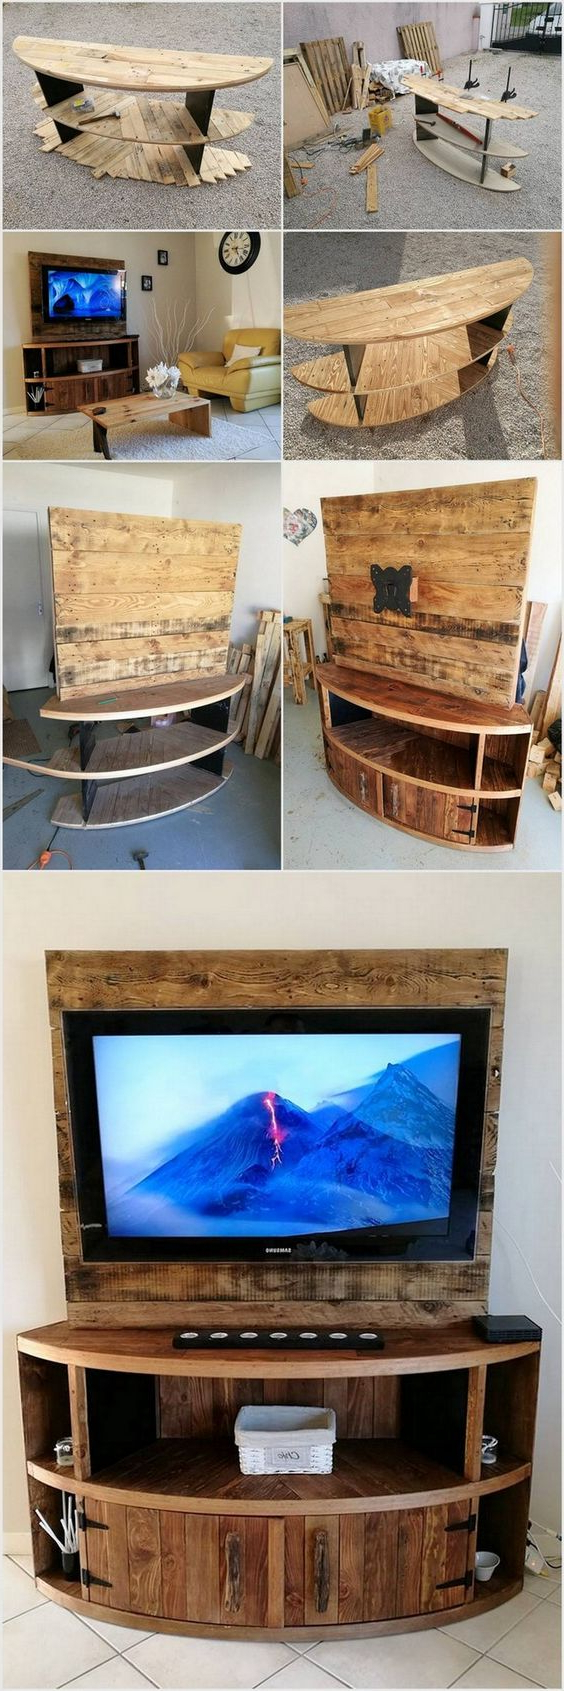 Well Known Wooden Tv Stand With Wheels With Regard To 21+ Diy Tv Stand Ideas For Your Weekend Home Project (View 14 of 20)